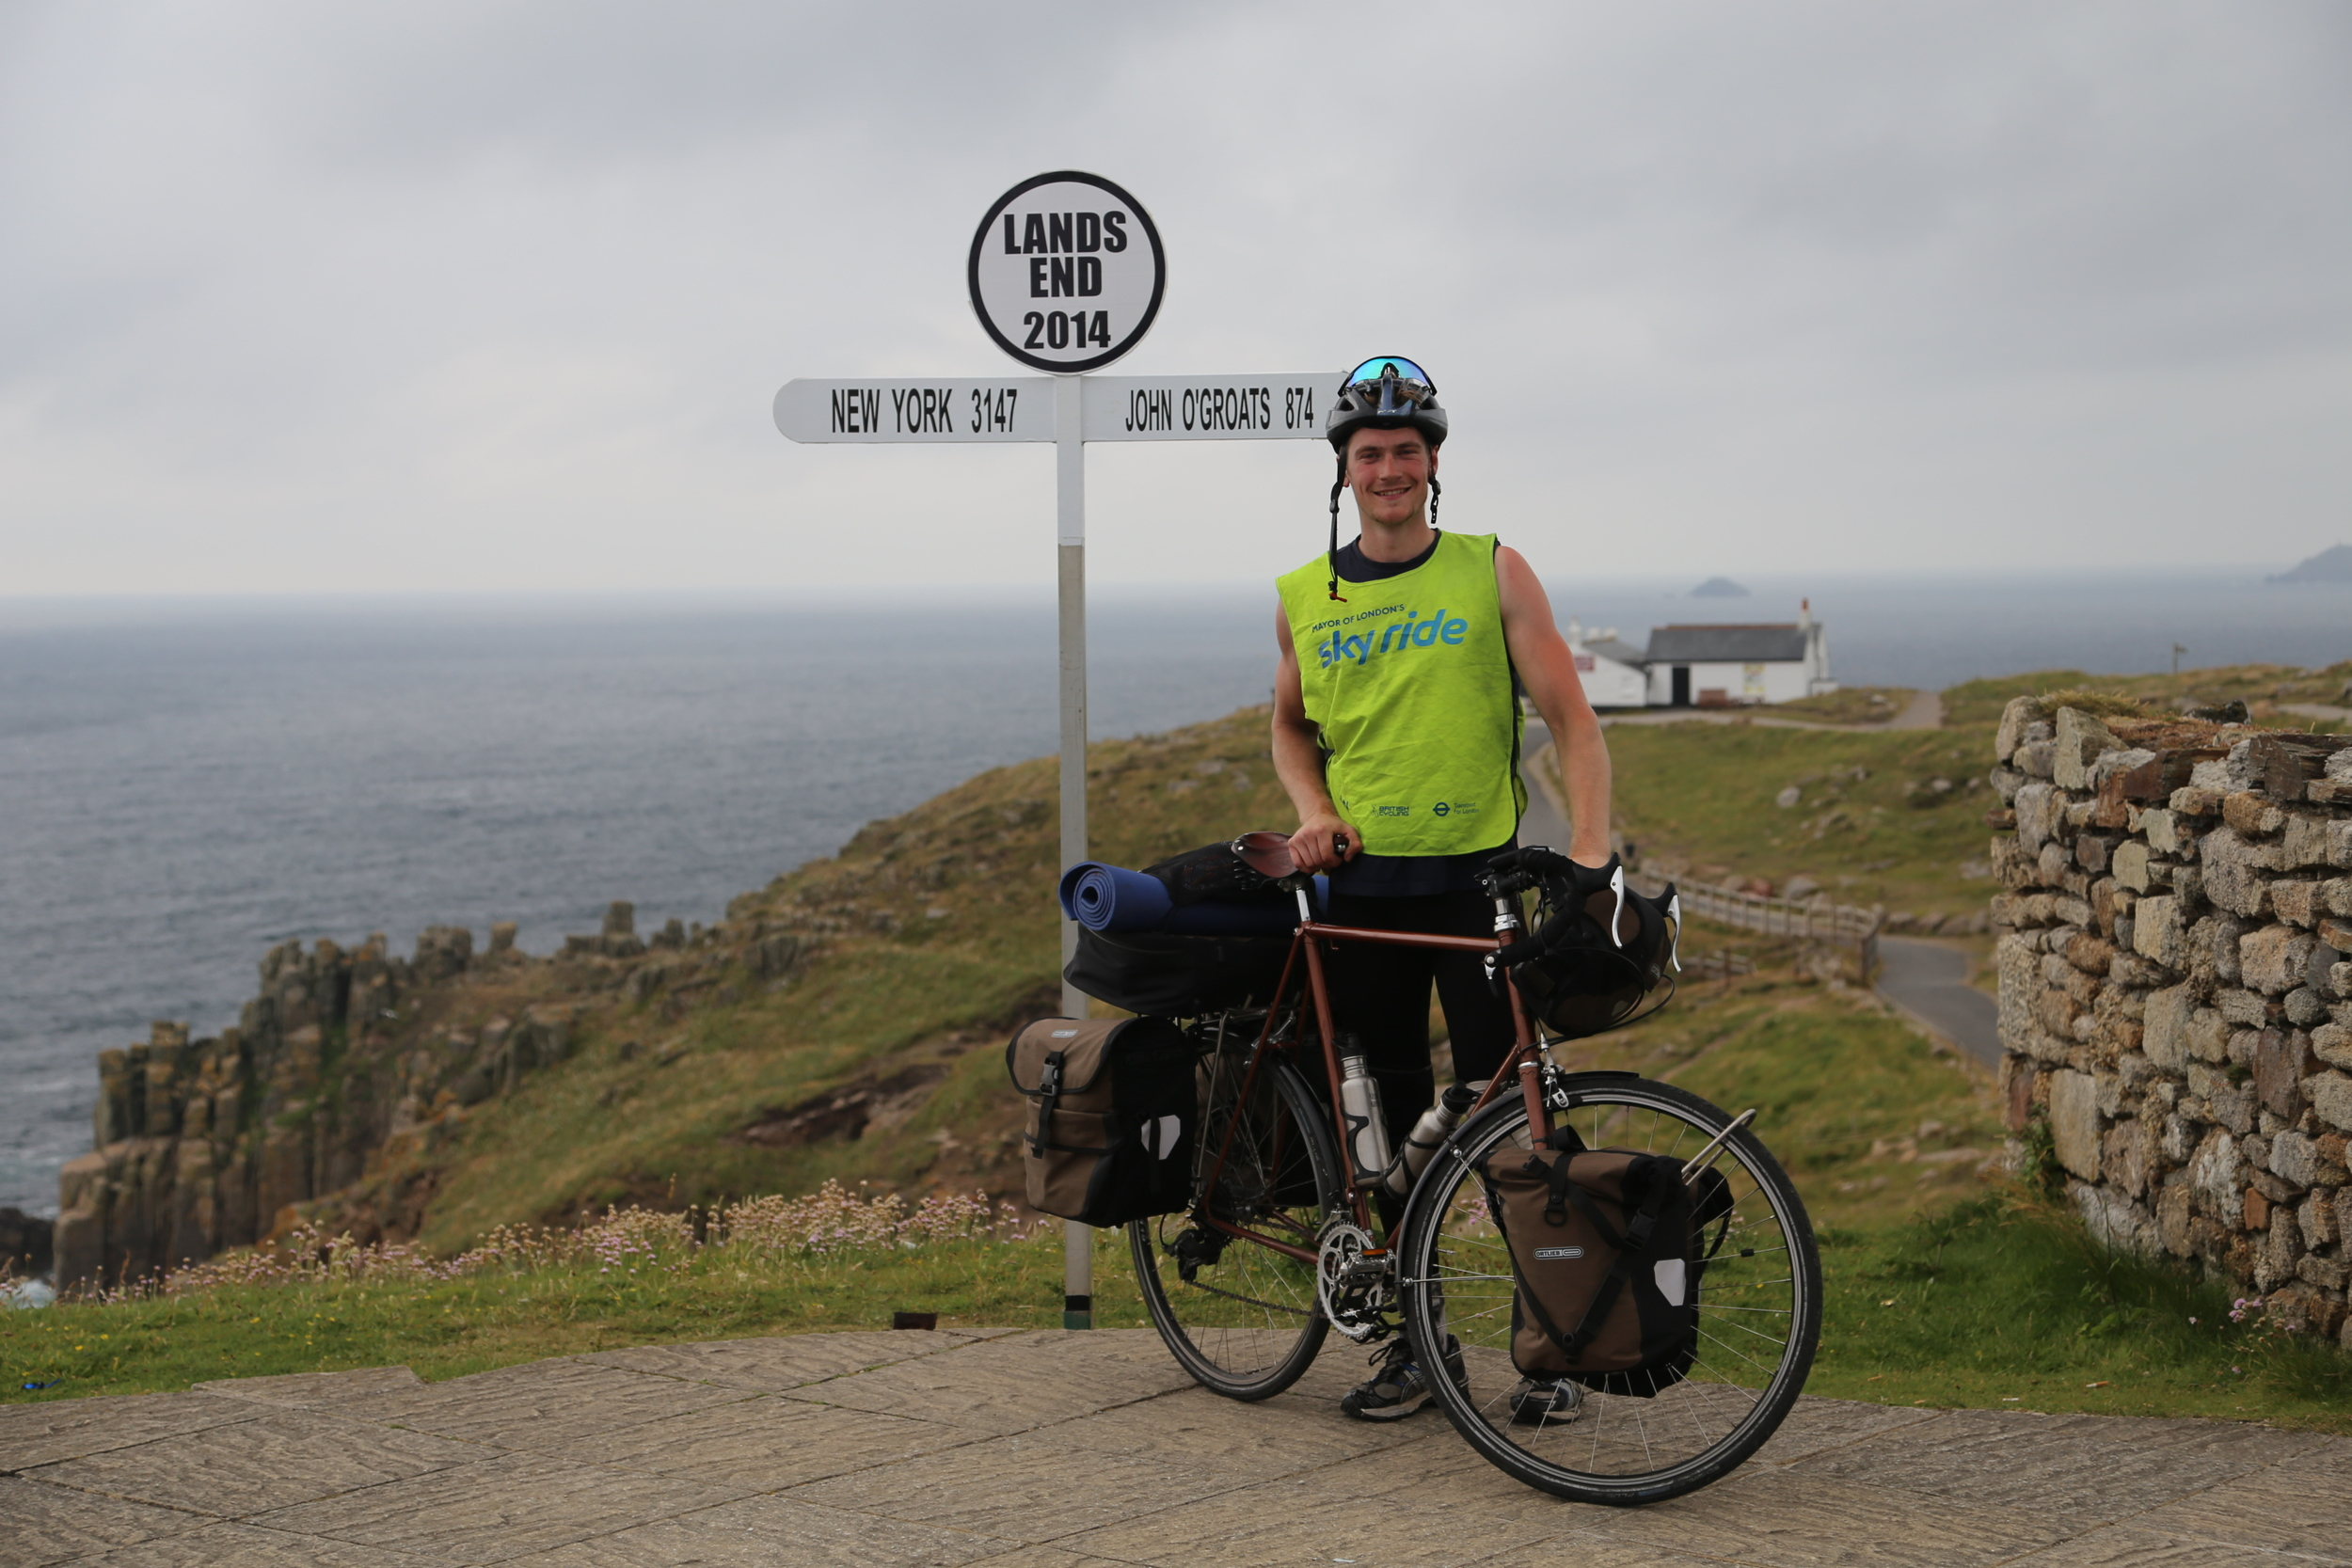 lands end, lejog, photo, Berghaus, berghaus, blog, cycling blog, article, canon 6d